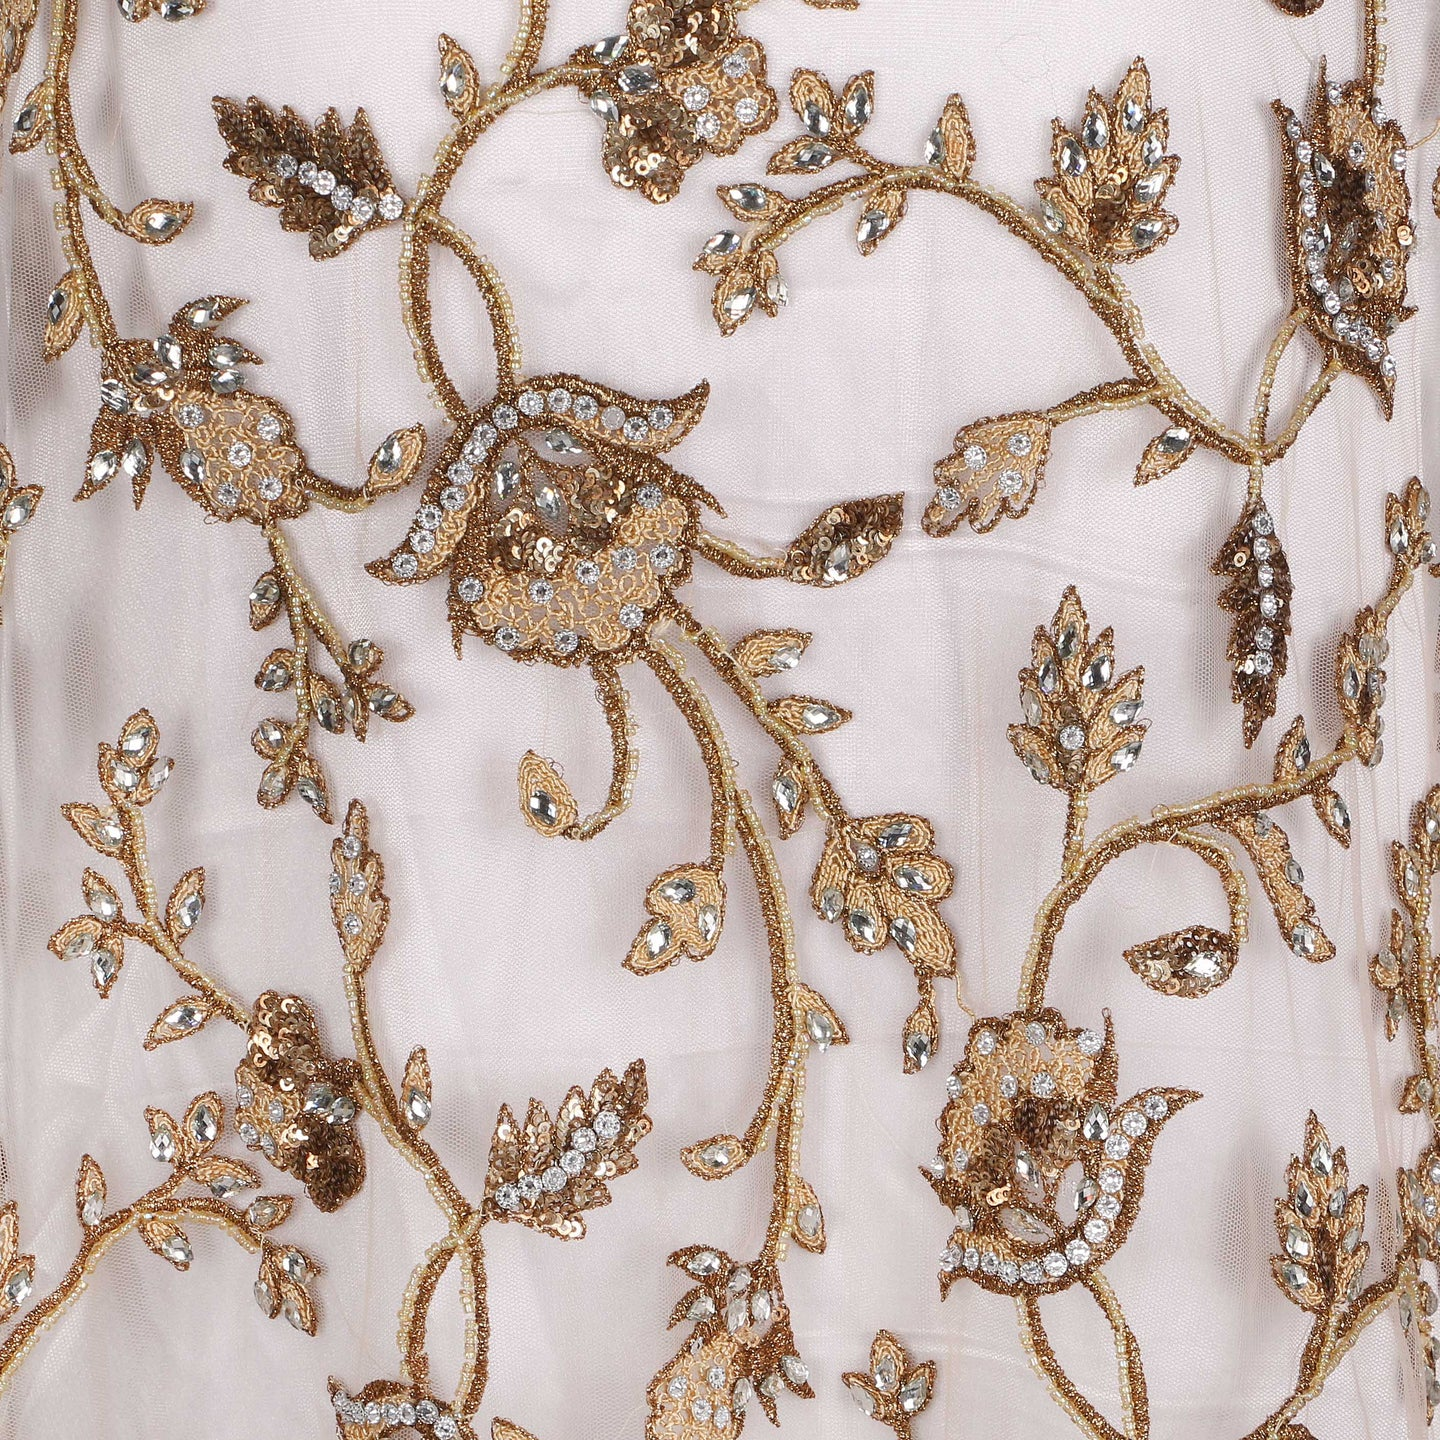 Hand Embroidered Fabric Design # 4156 - Champagne Gold - Per Yard